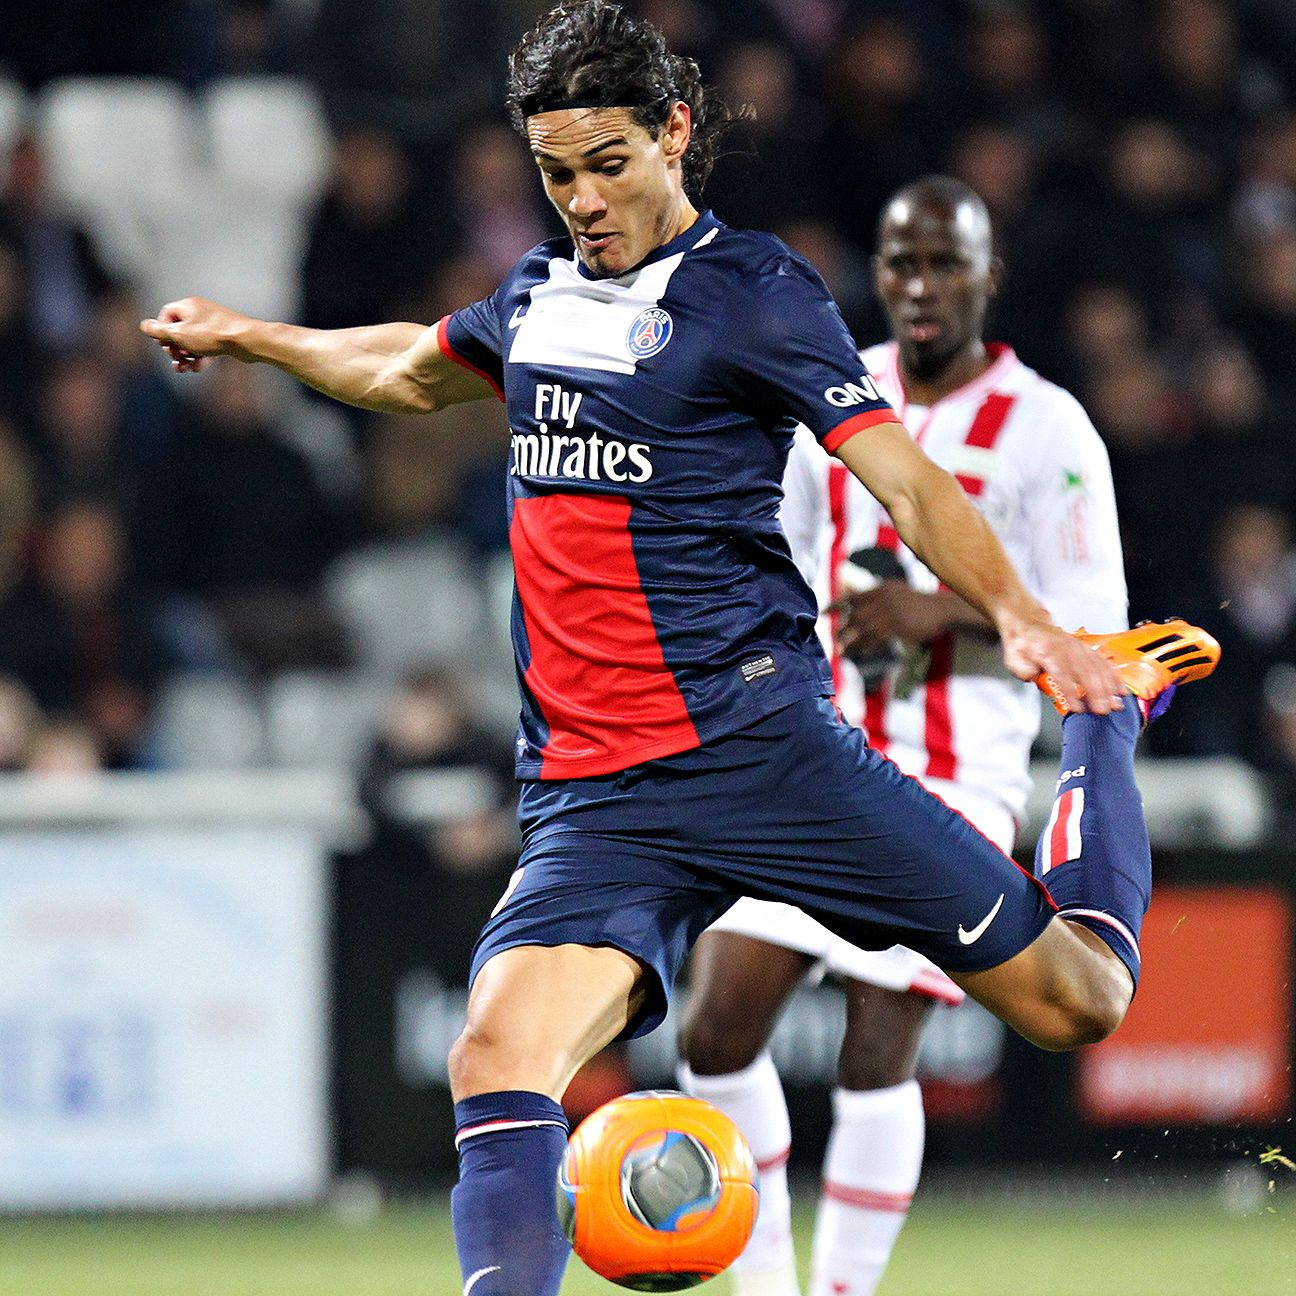 Edinson Cavani should have plenty of chances to rediscover his goal-scoring form versus Ajaccio.